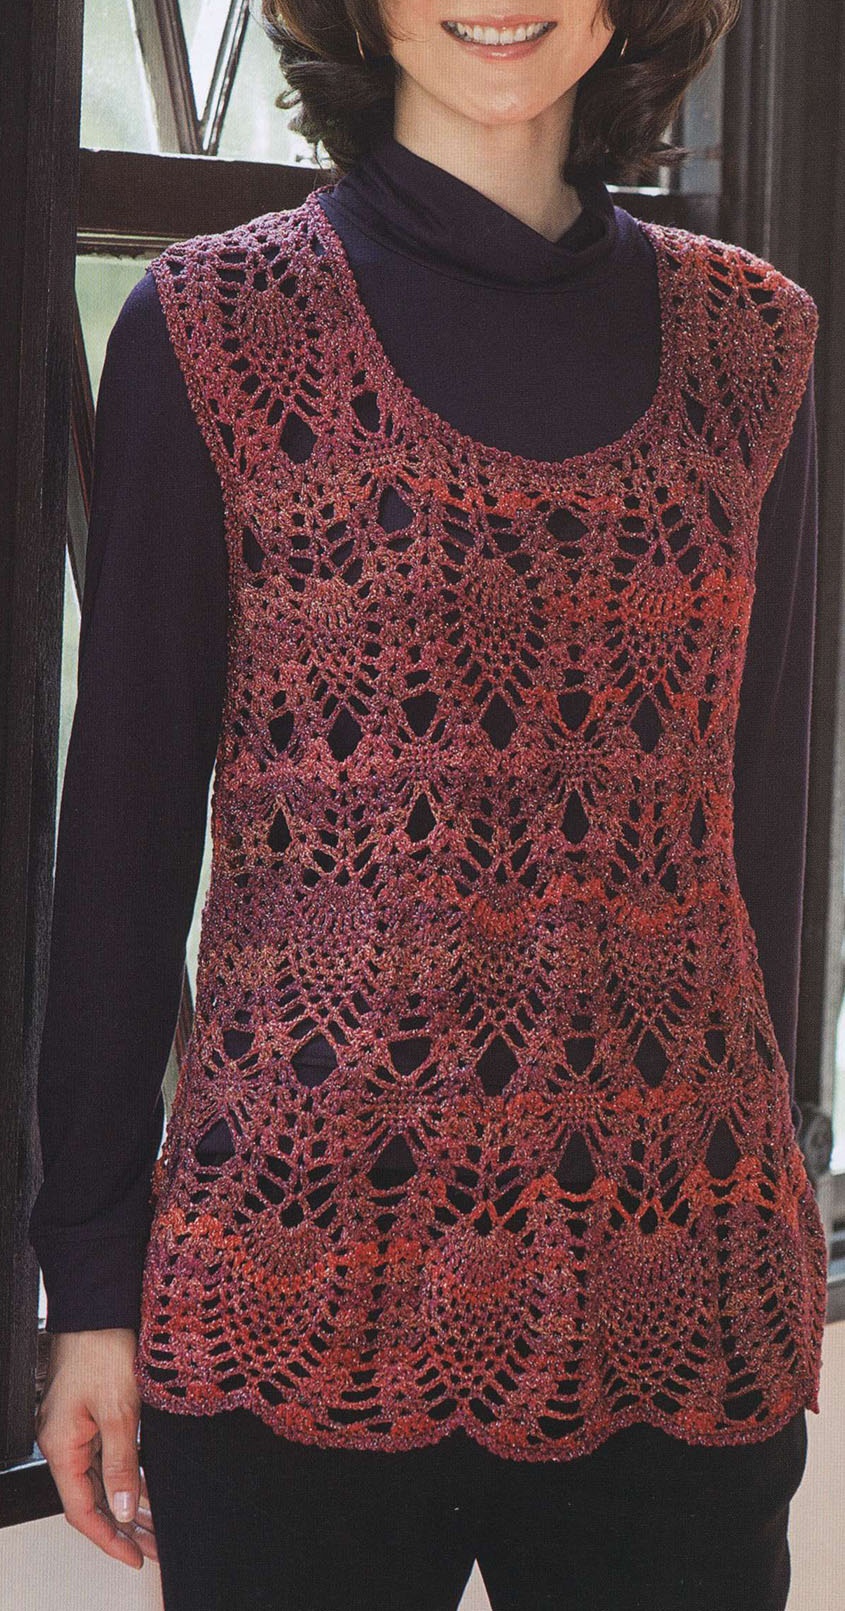 Women's tunic crochet pattern